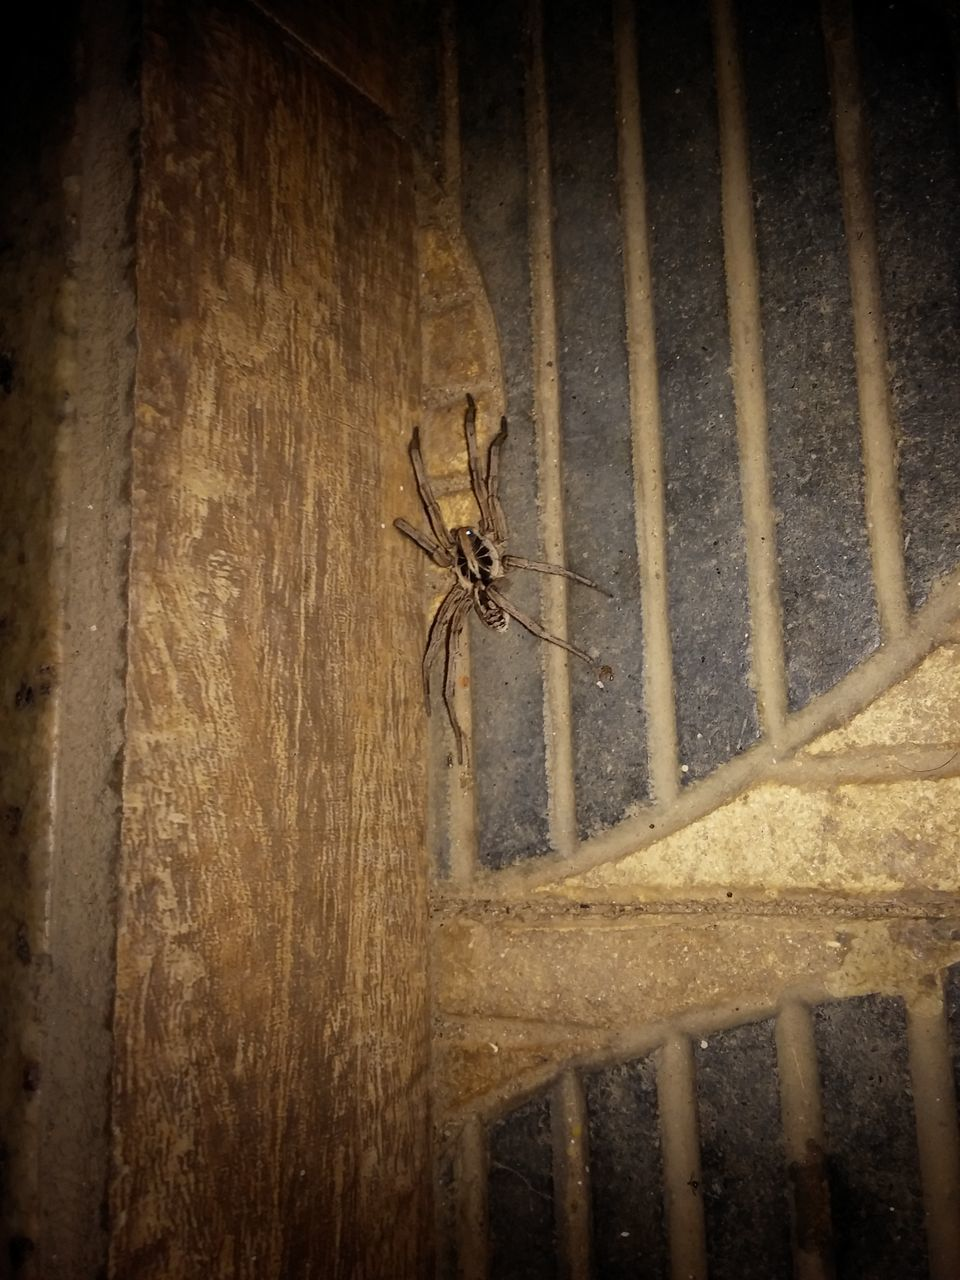 animal themes, animals in the wild, one animal, insect, animal wildlife, wood - material, no people, day, close-up, outdoors, nature